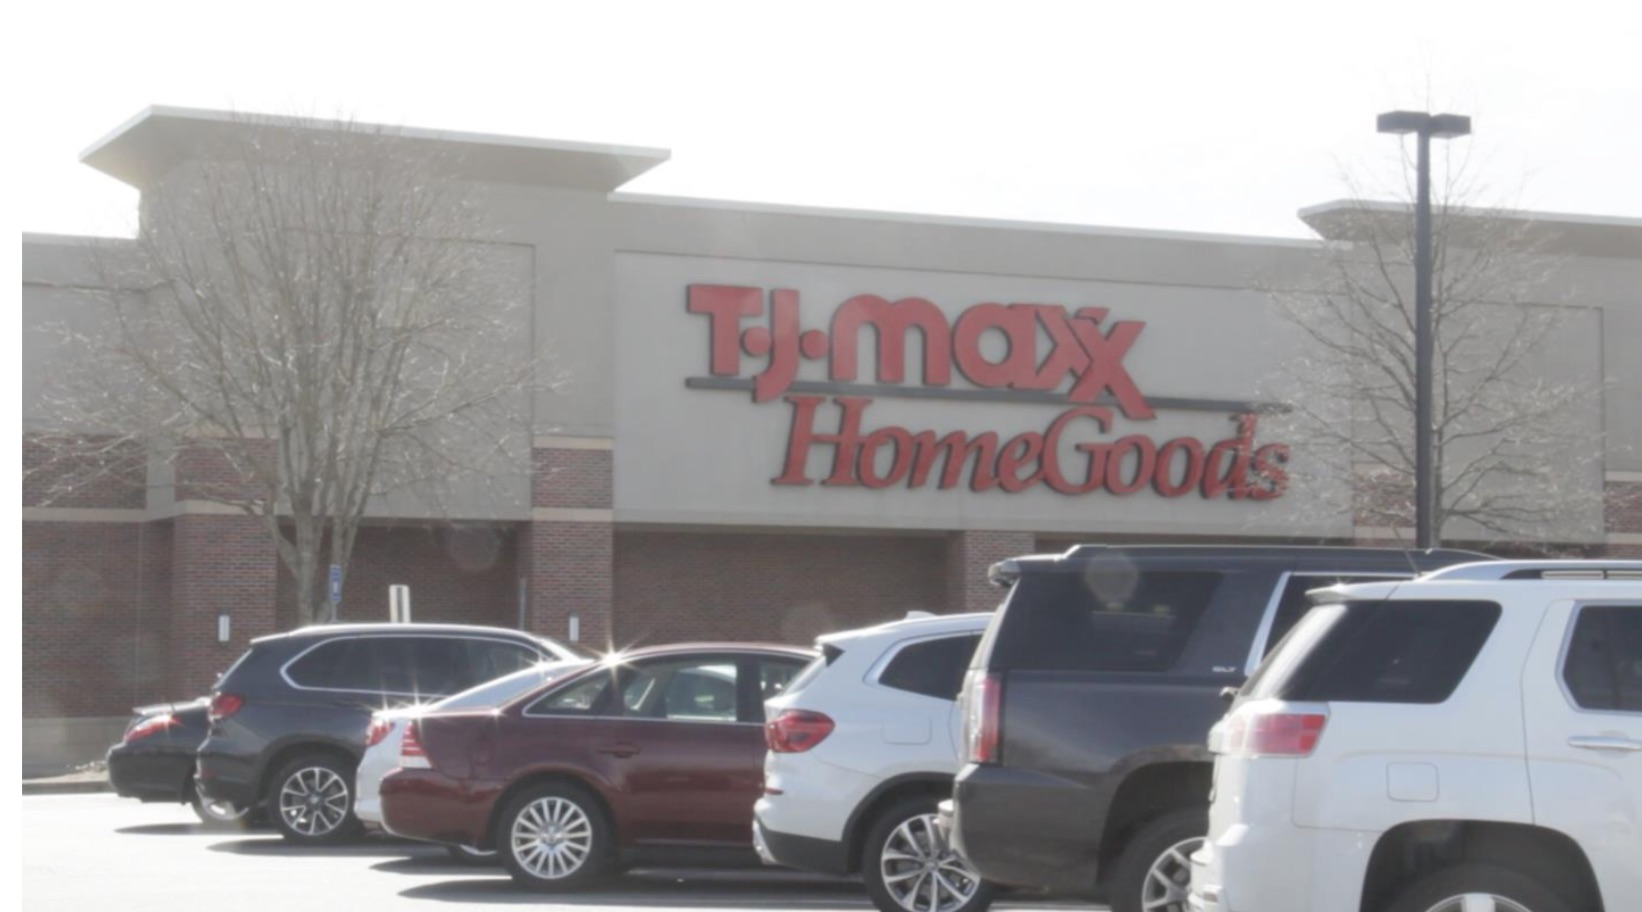 ANNOTATED: UGA Student Followed by Three Men in TJ Maxx